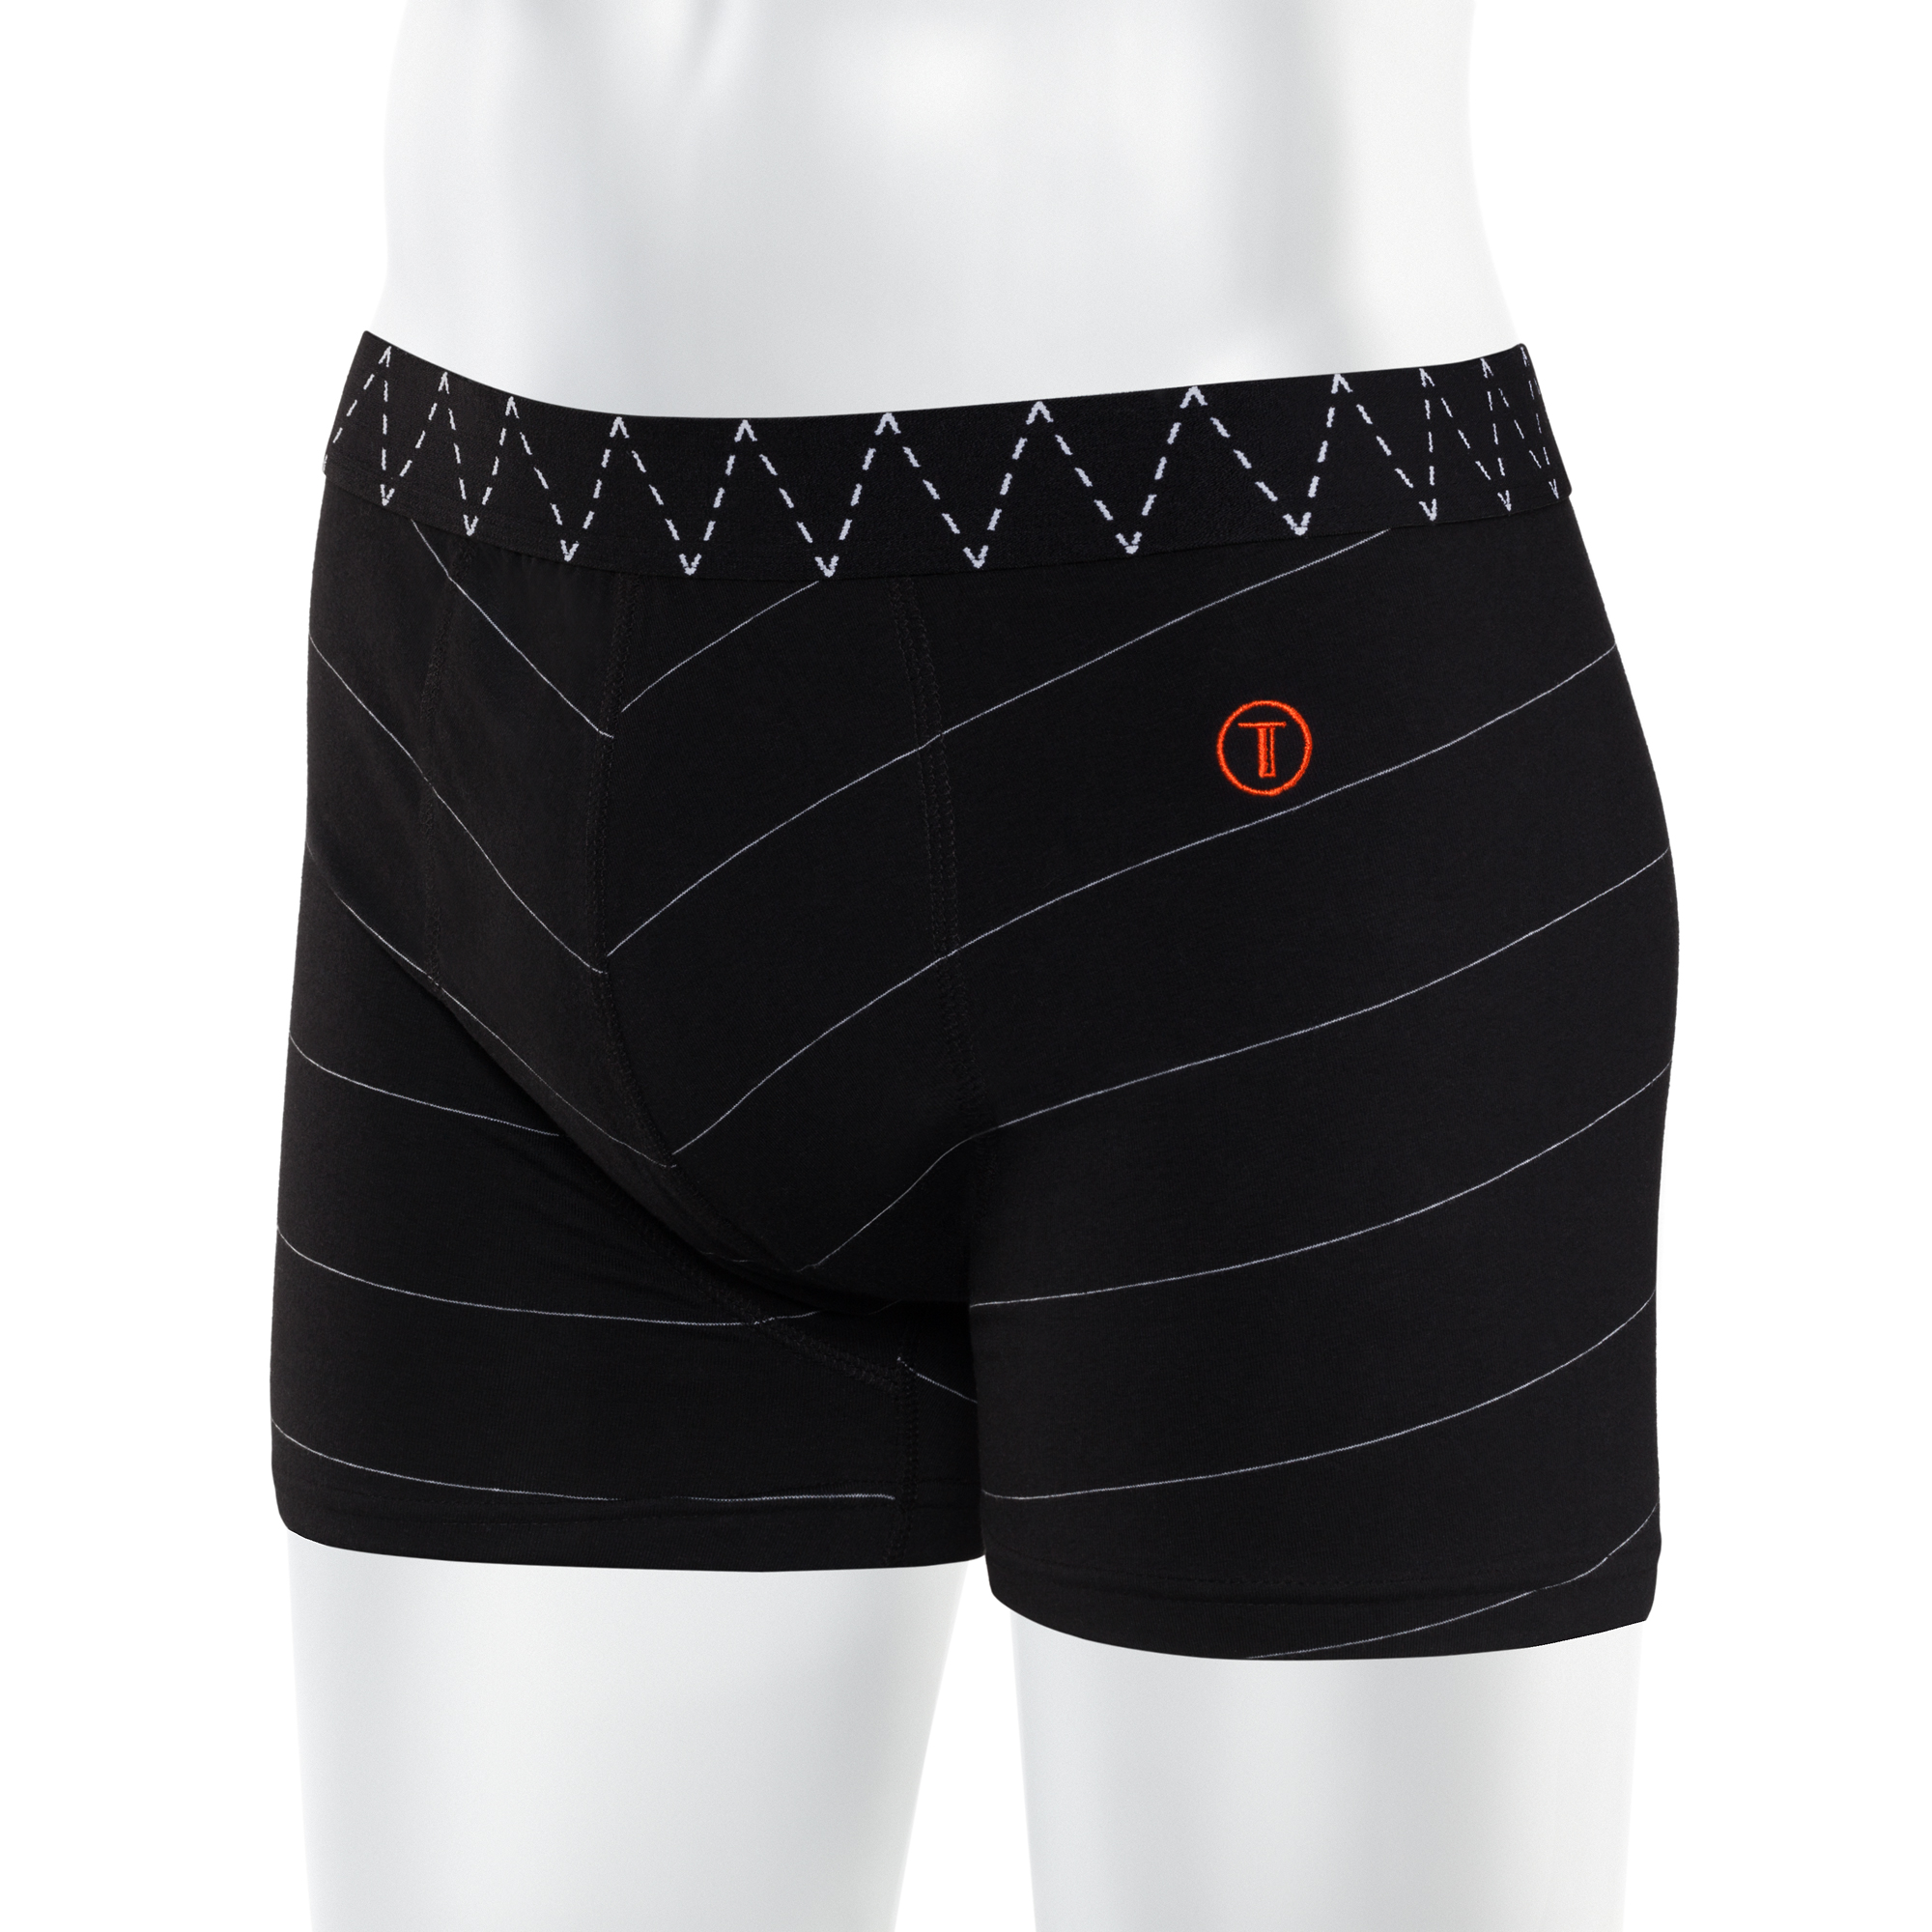 TT15 Boxershorts Black/Microstripes GOTS & Fairtrade